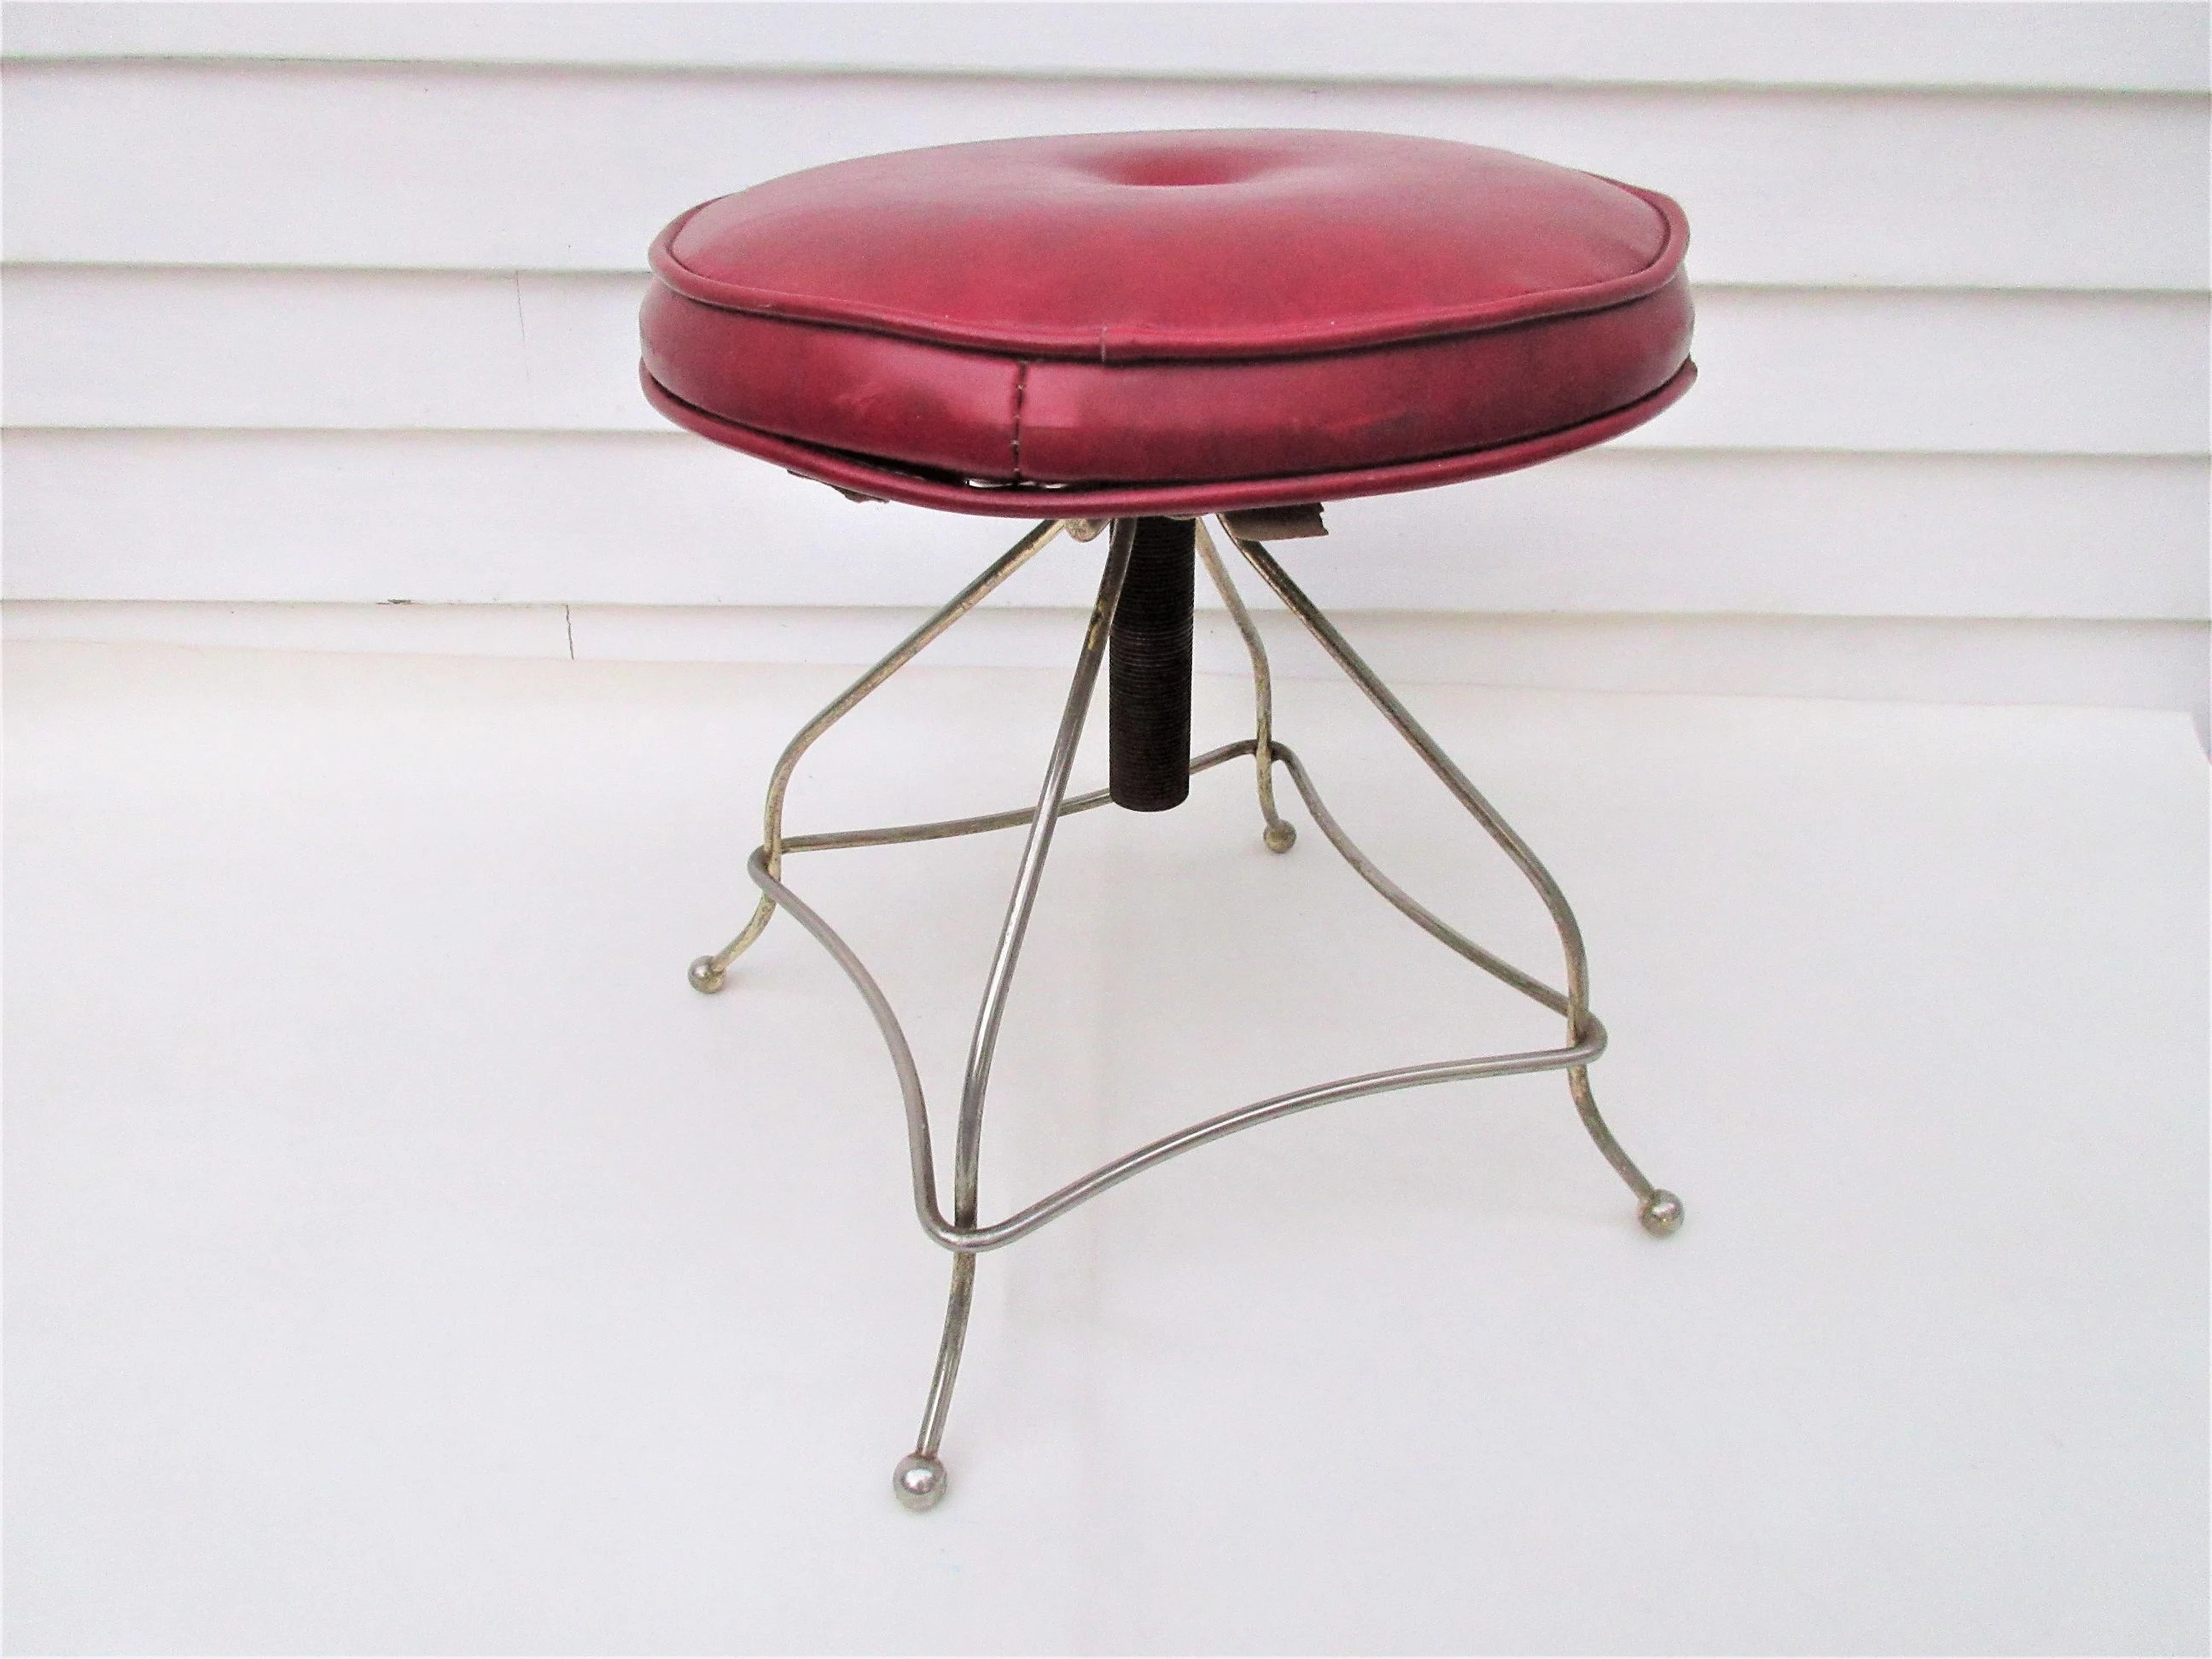 Adjustable Vanity Chair Vintage Metal Vanity Chair Adjustable Swivel Stool Red Vinyl Seat Brass Stool